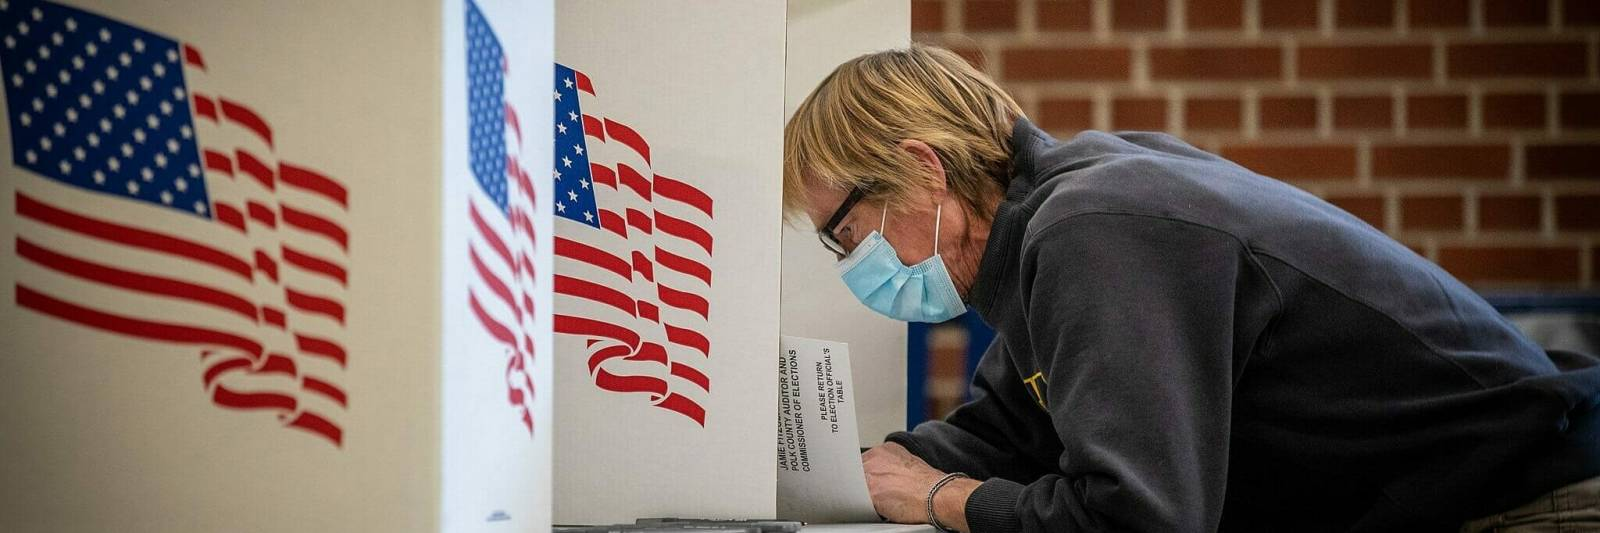 Cybersecurity In A Fishbowl: How North Carolina's Board Of Elections